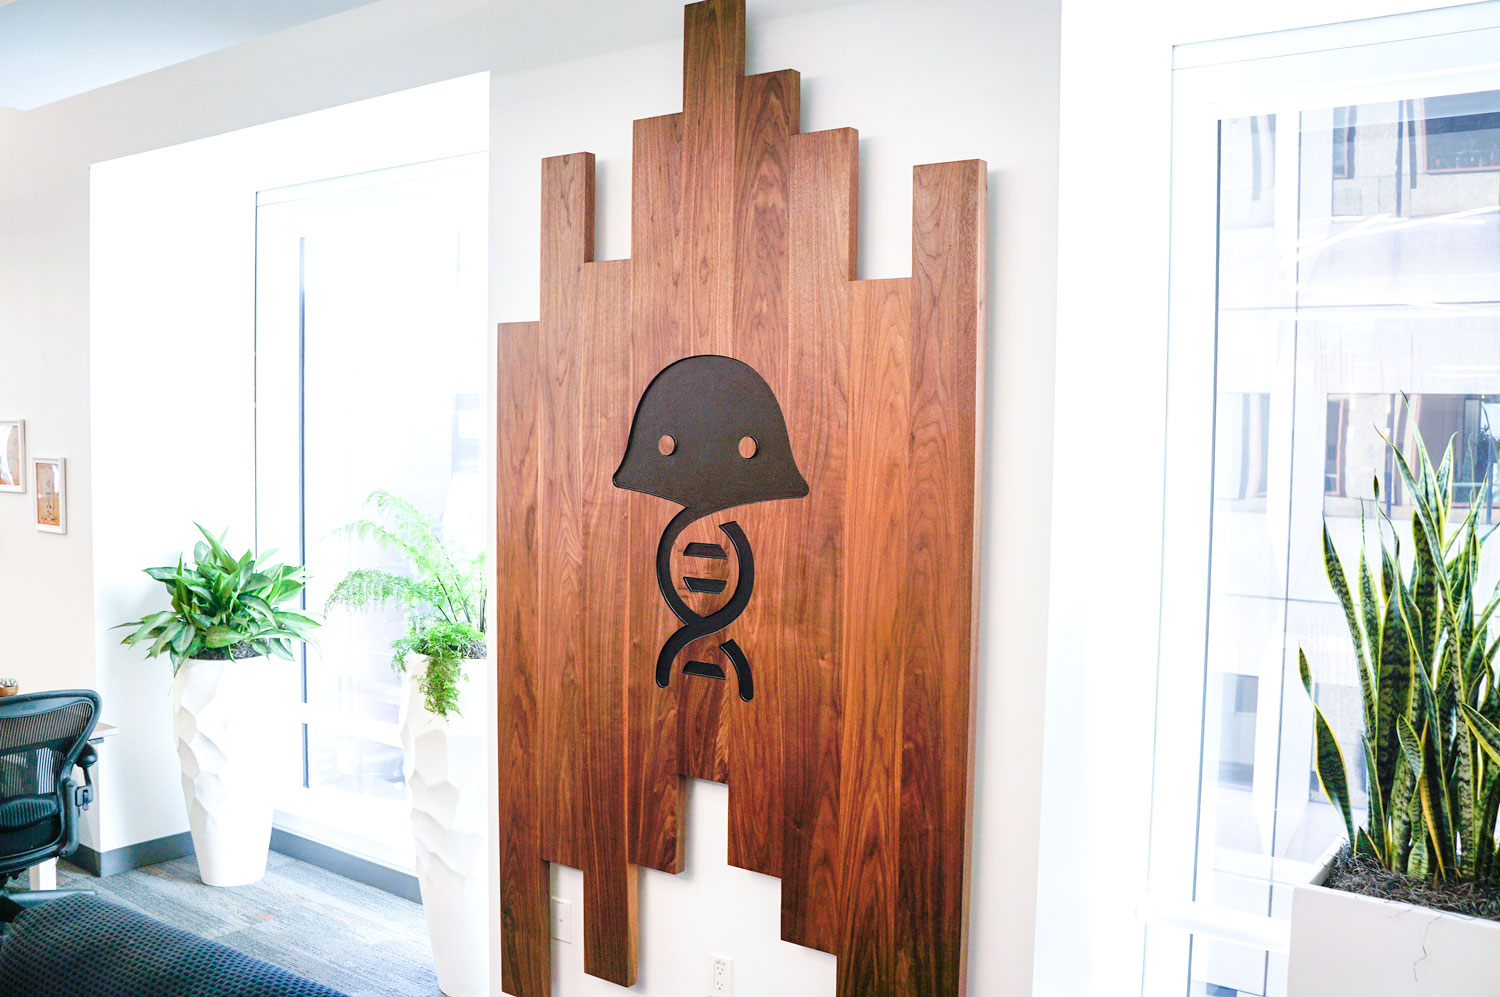 Solid walnut slat sign with engraved jellyfish for the office of Benchling, a San Francisco based company working on a unified platform to accelerate, measure, and forecast R&D from discovery through bioprocessing.